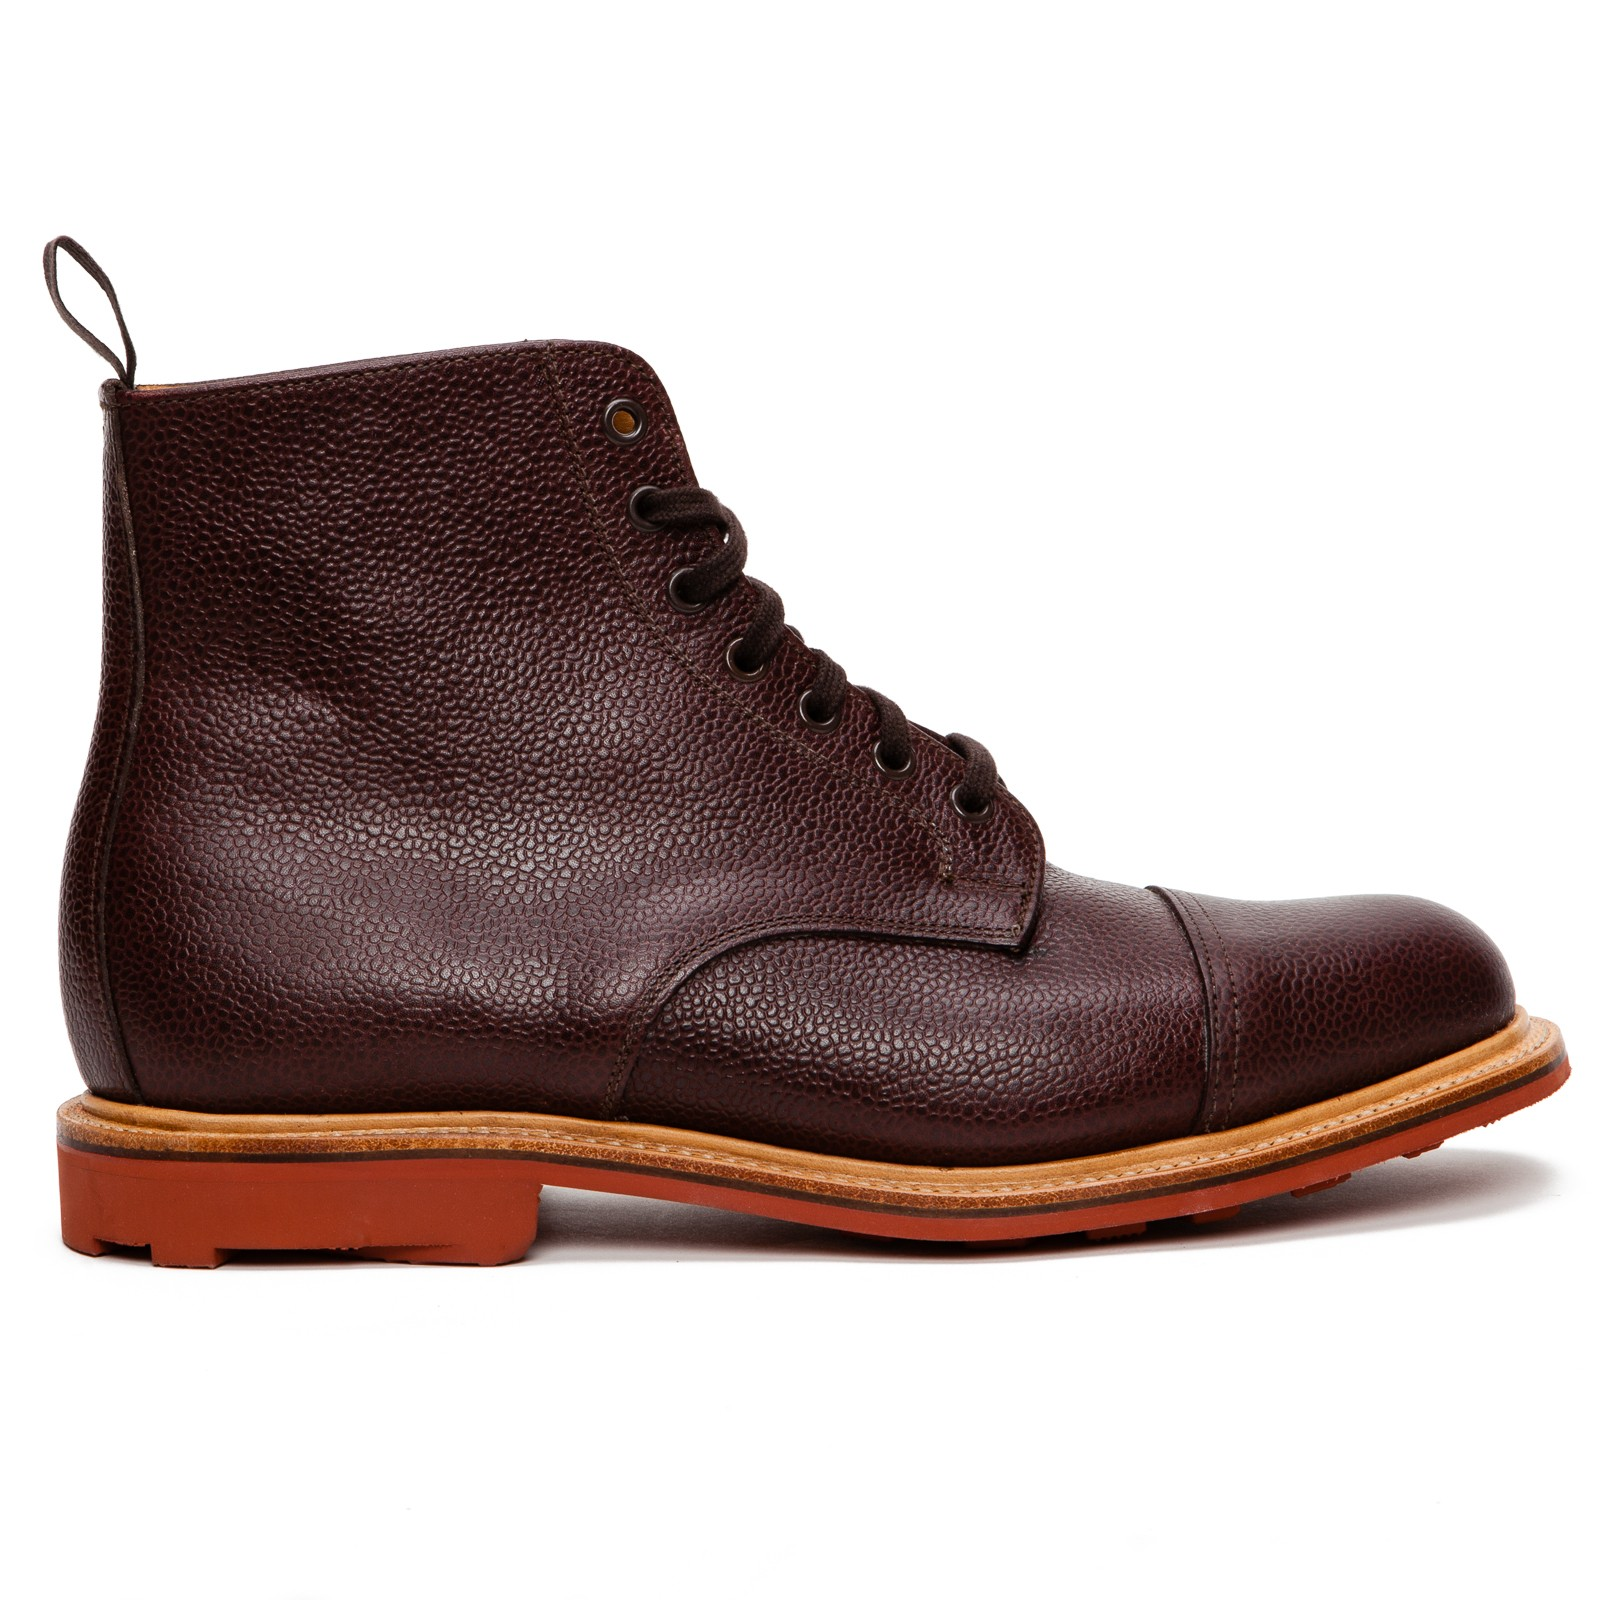 mcnairy new amsterdam toe cap boots in brown for